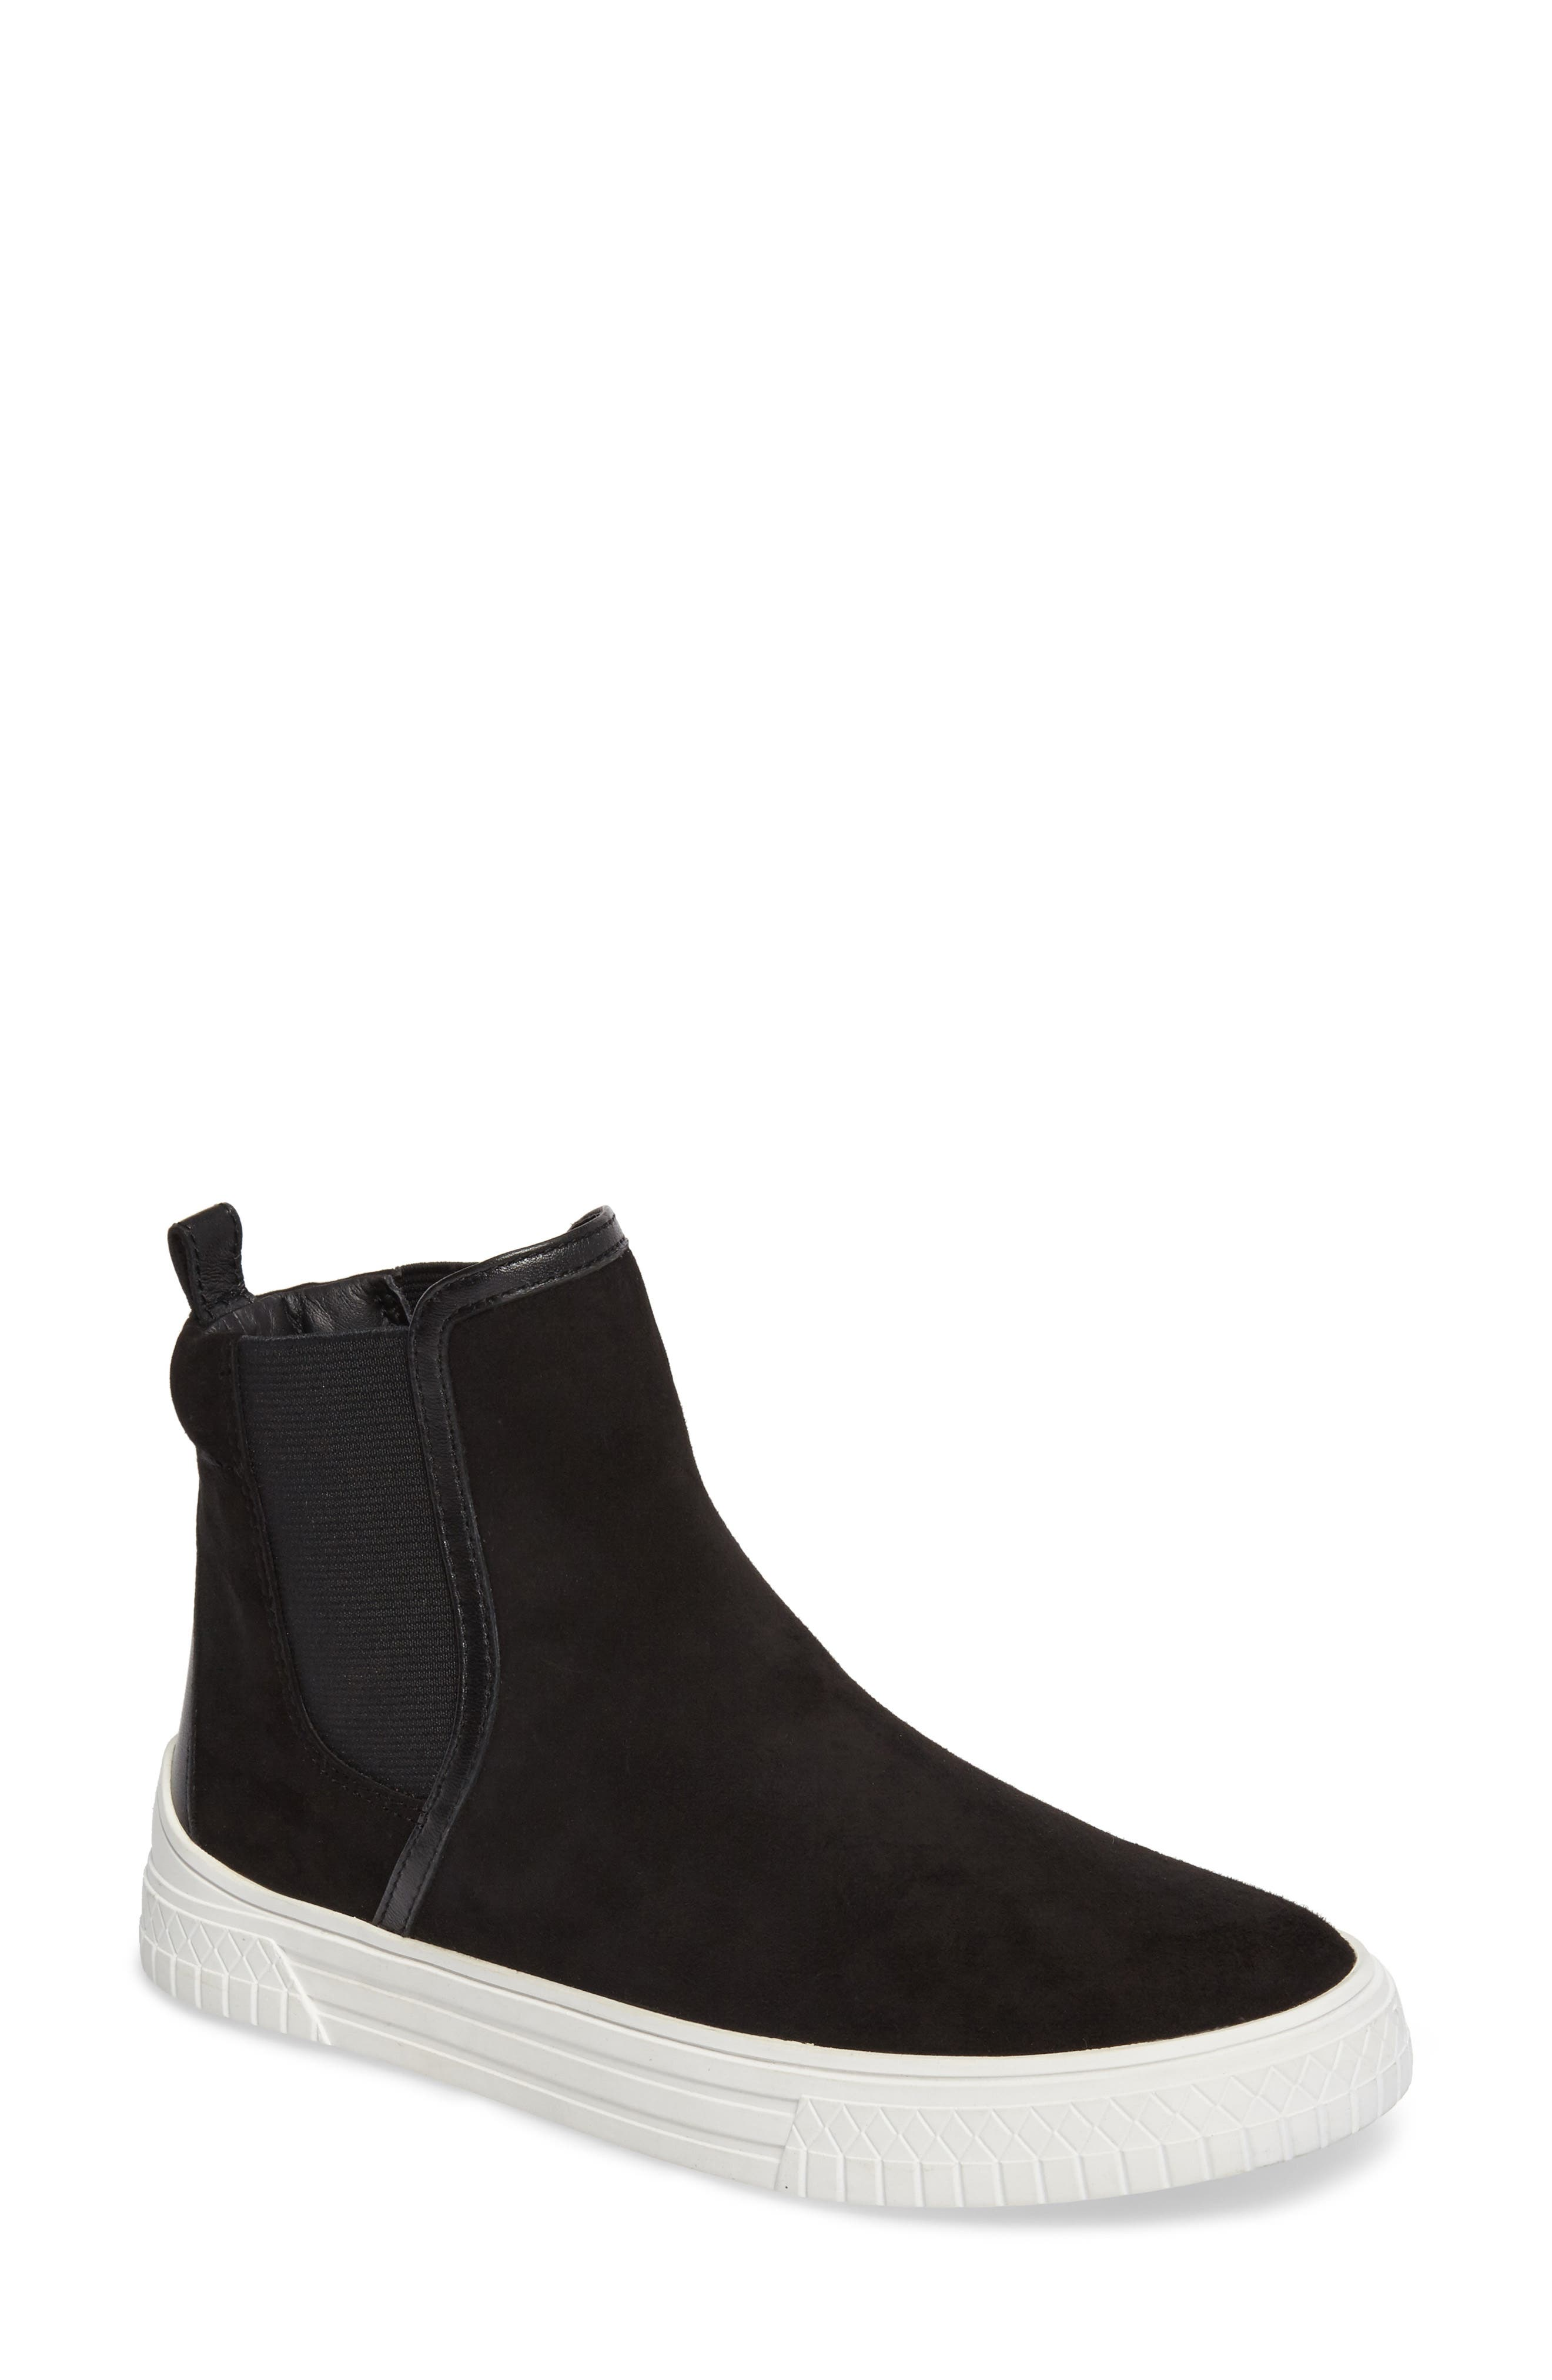 Gage Chelsea Boot,                         Main,                         color, Black Suede